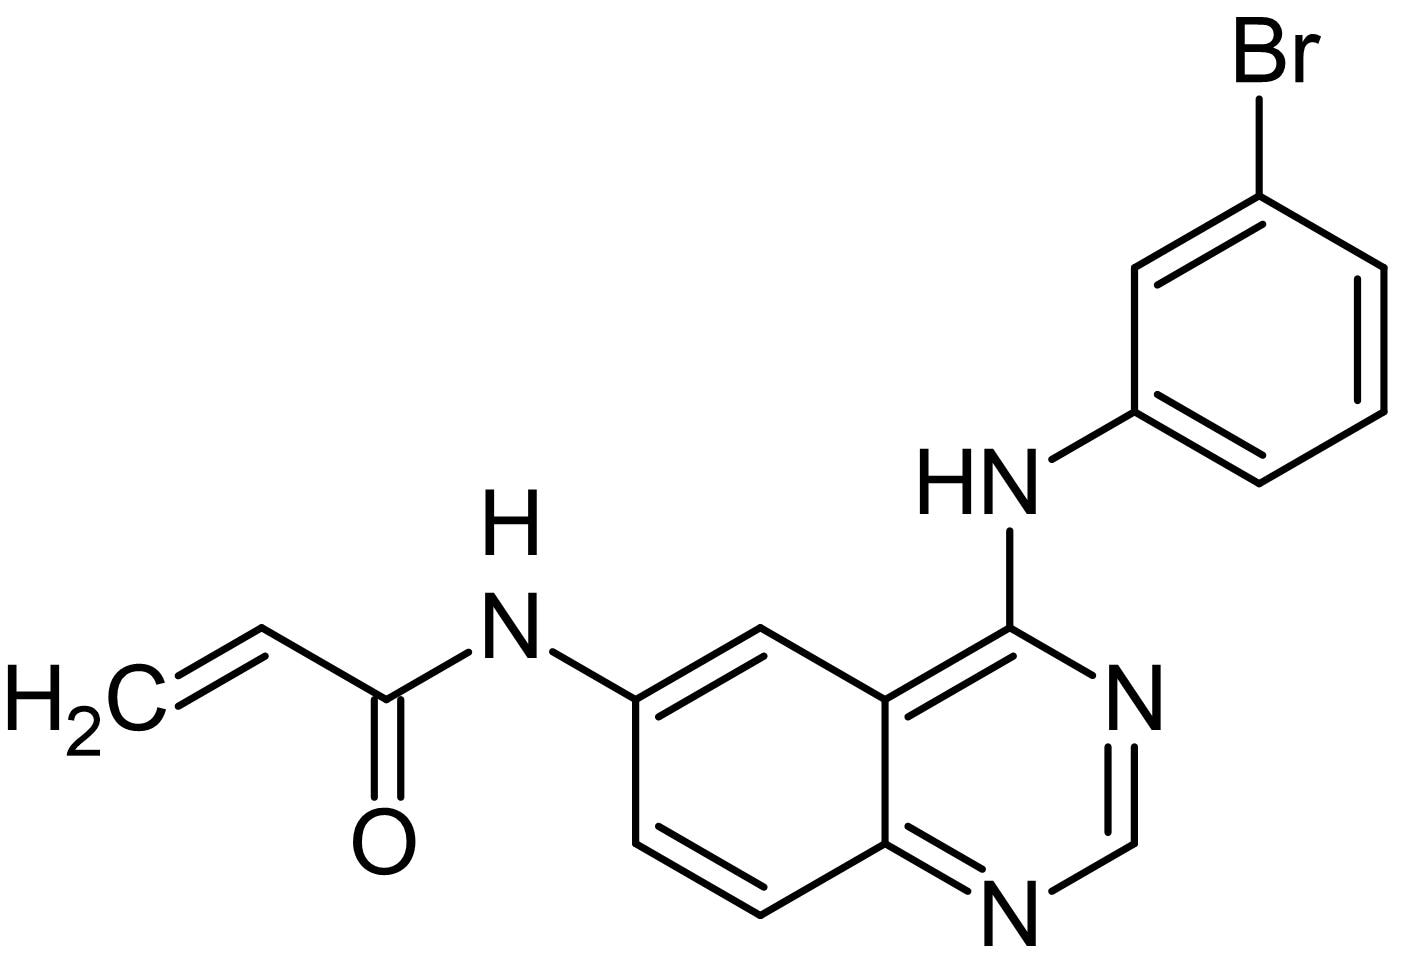 Chemical Structure - PD 168393, EGFR inhibitor (ab145187)